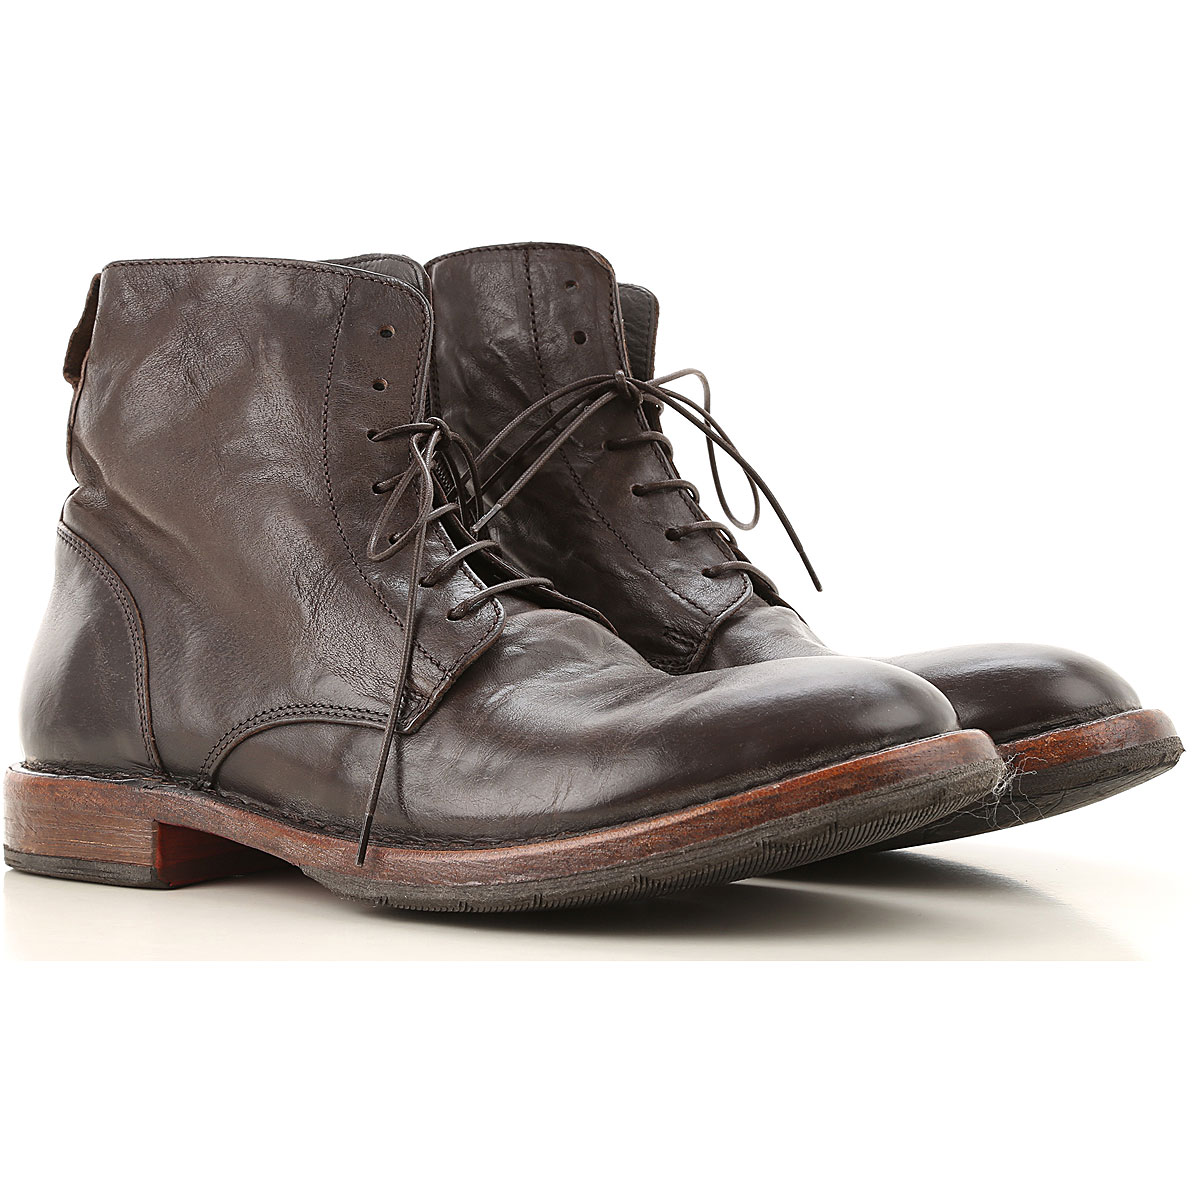 Moma Boots for Men, Booties On Sale, Dark Brown, Leather, 2019, 10 7.5